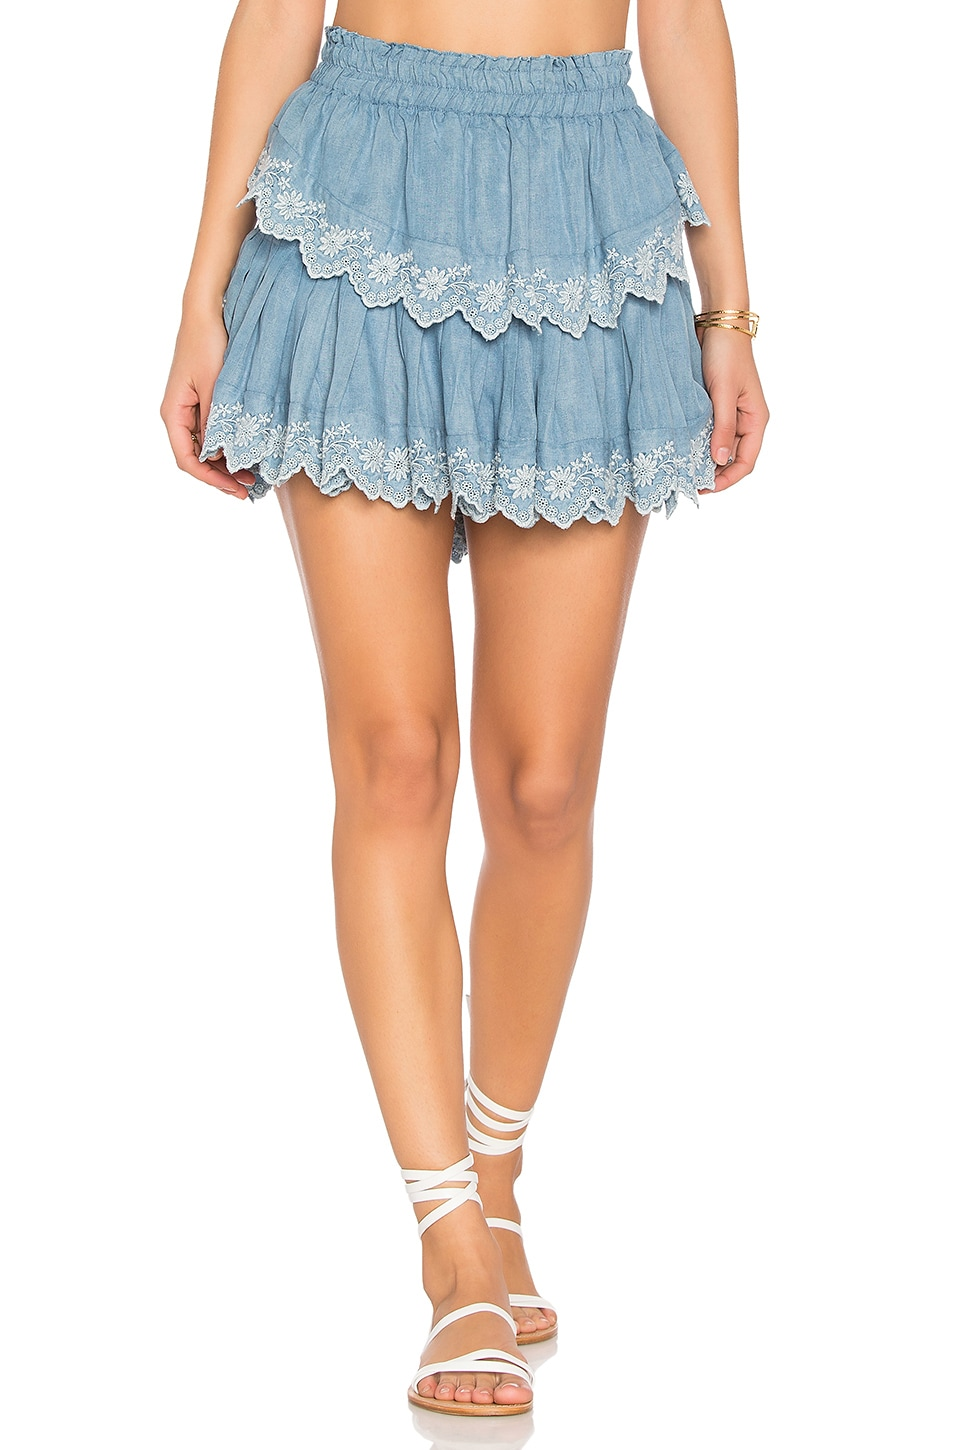 Ruffle Mini Skirt by Loveshackfancy